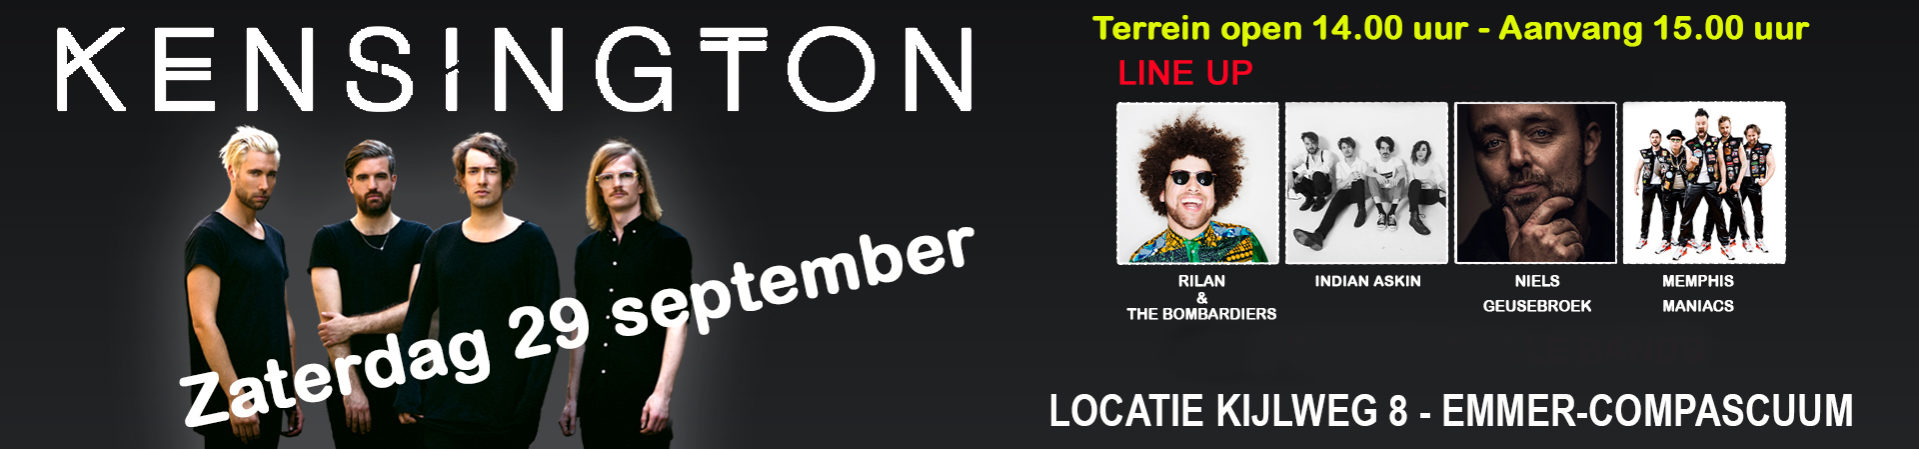 Kensington Ticketpoint 1920x450